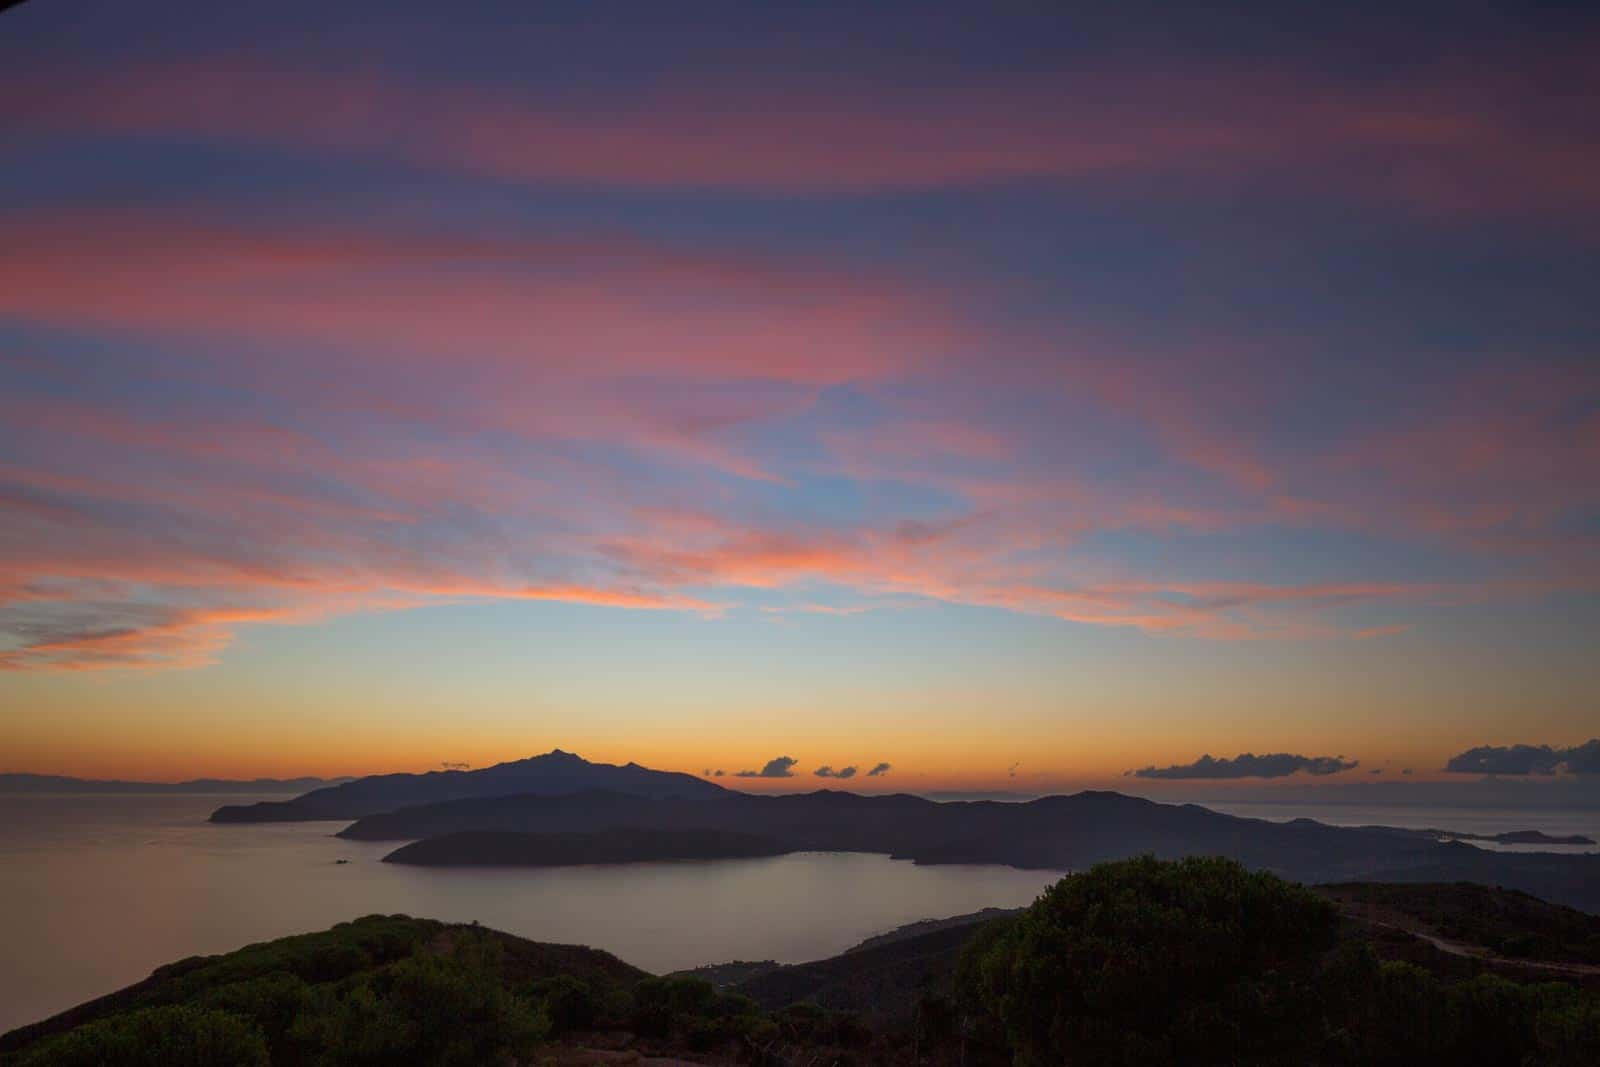 View on the Isola d'Elba from Monte Calamita at sunset. Arcipelago Toscano, Italy.